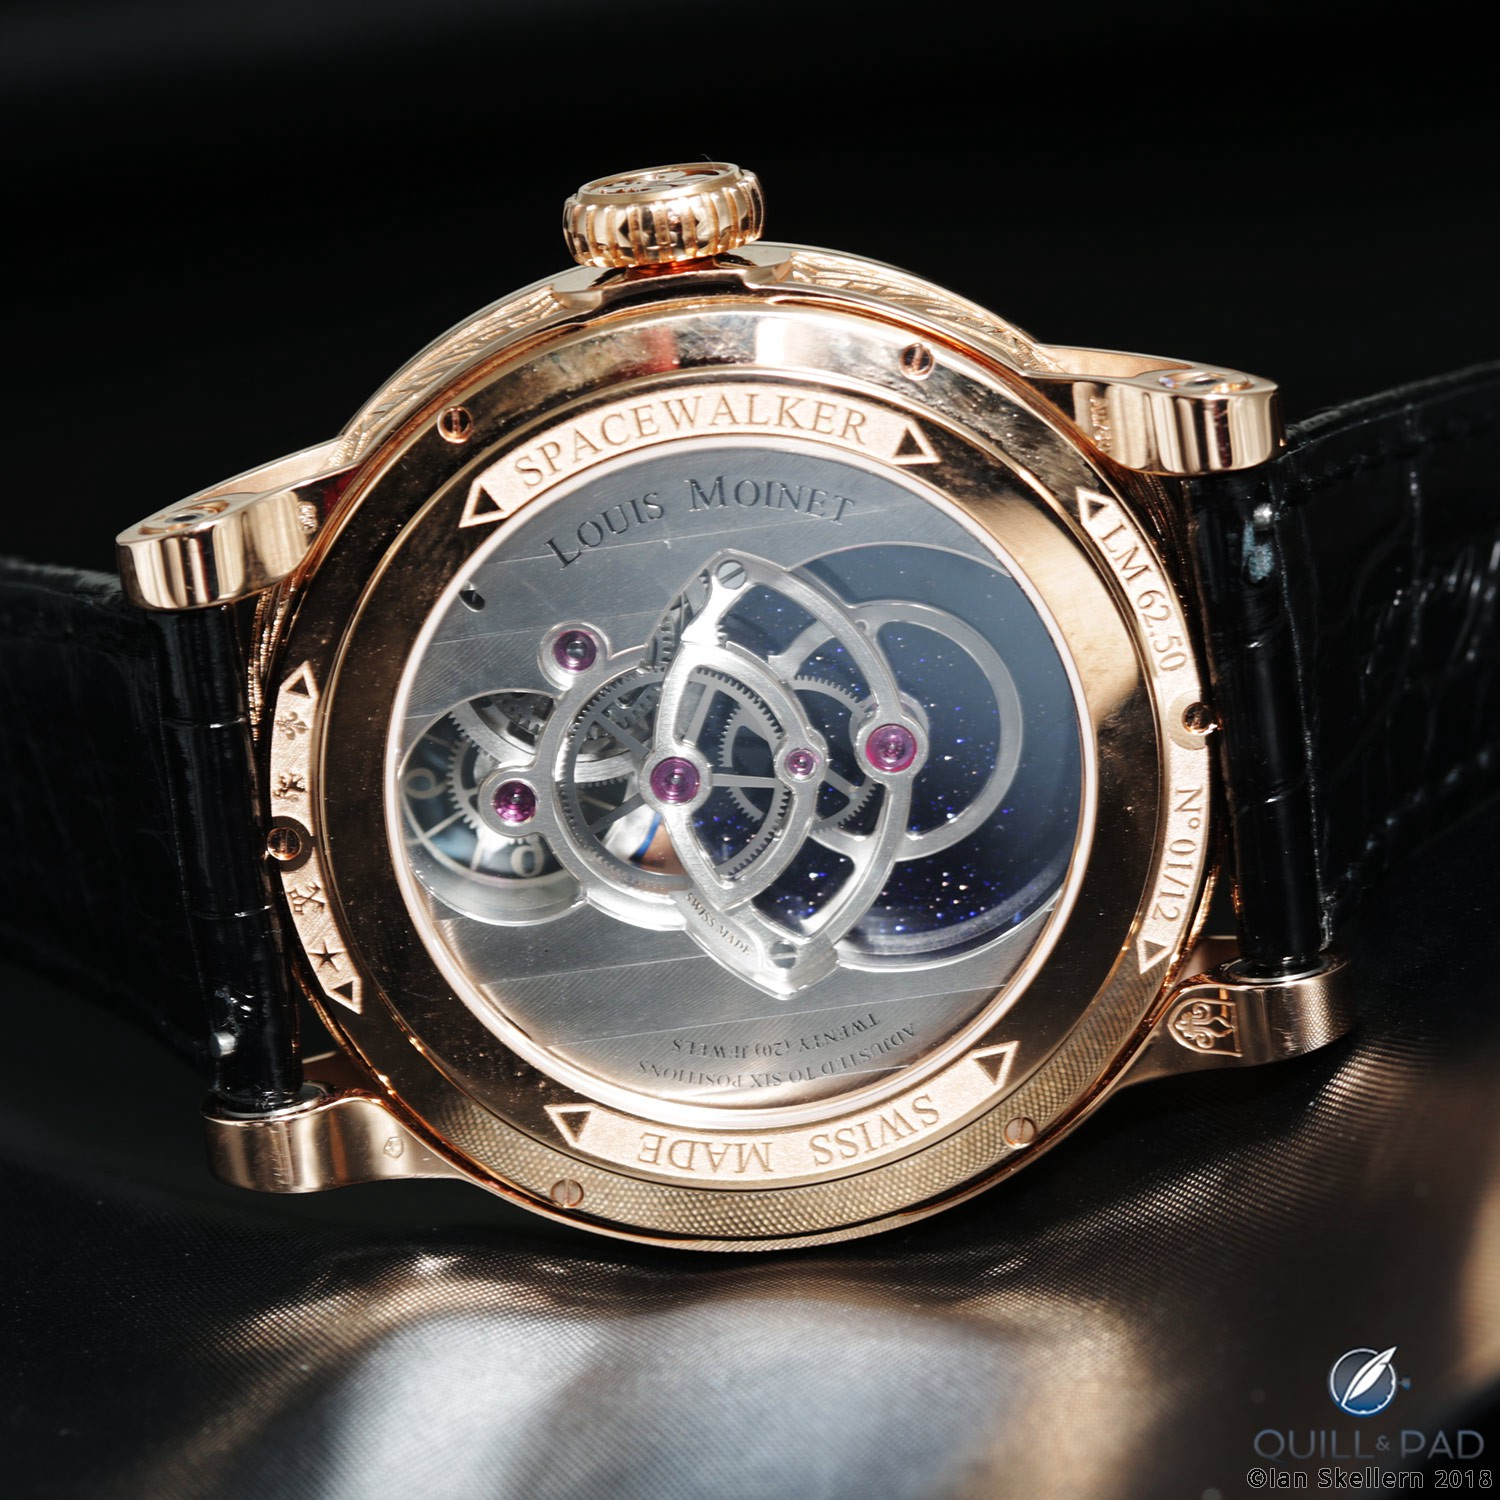 View from the back of the open movement of the Louis Moinet Spacewalker to the scintillating adventurine galaxy beyond